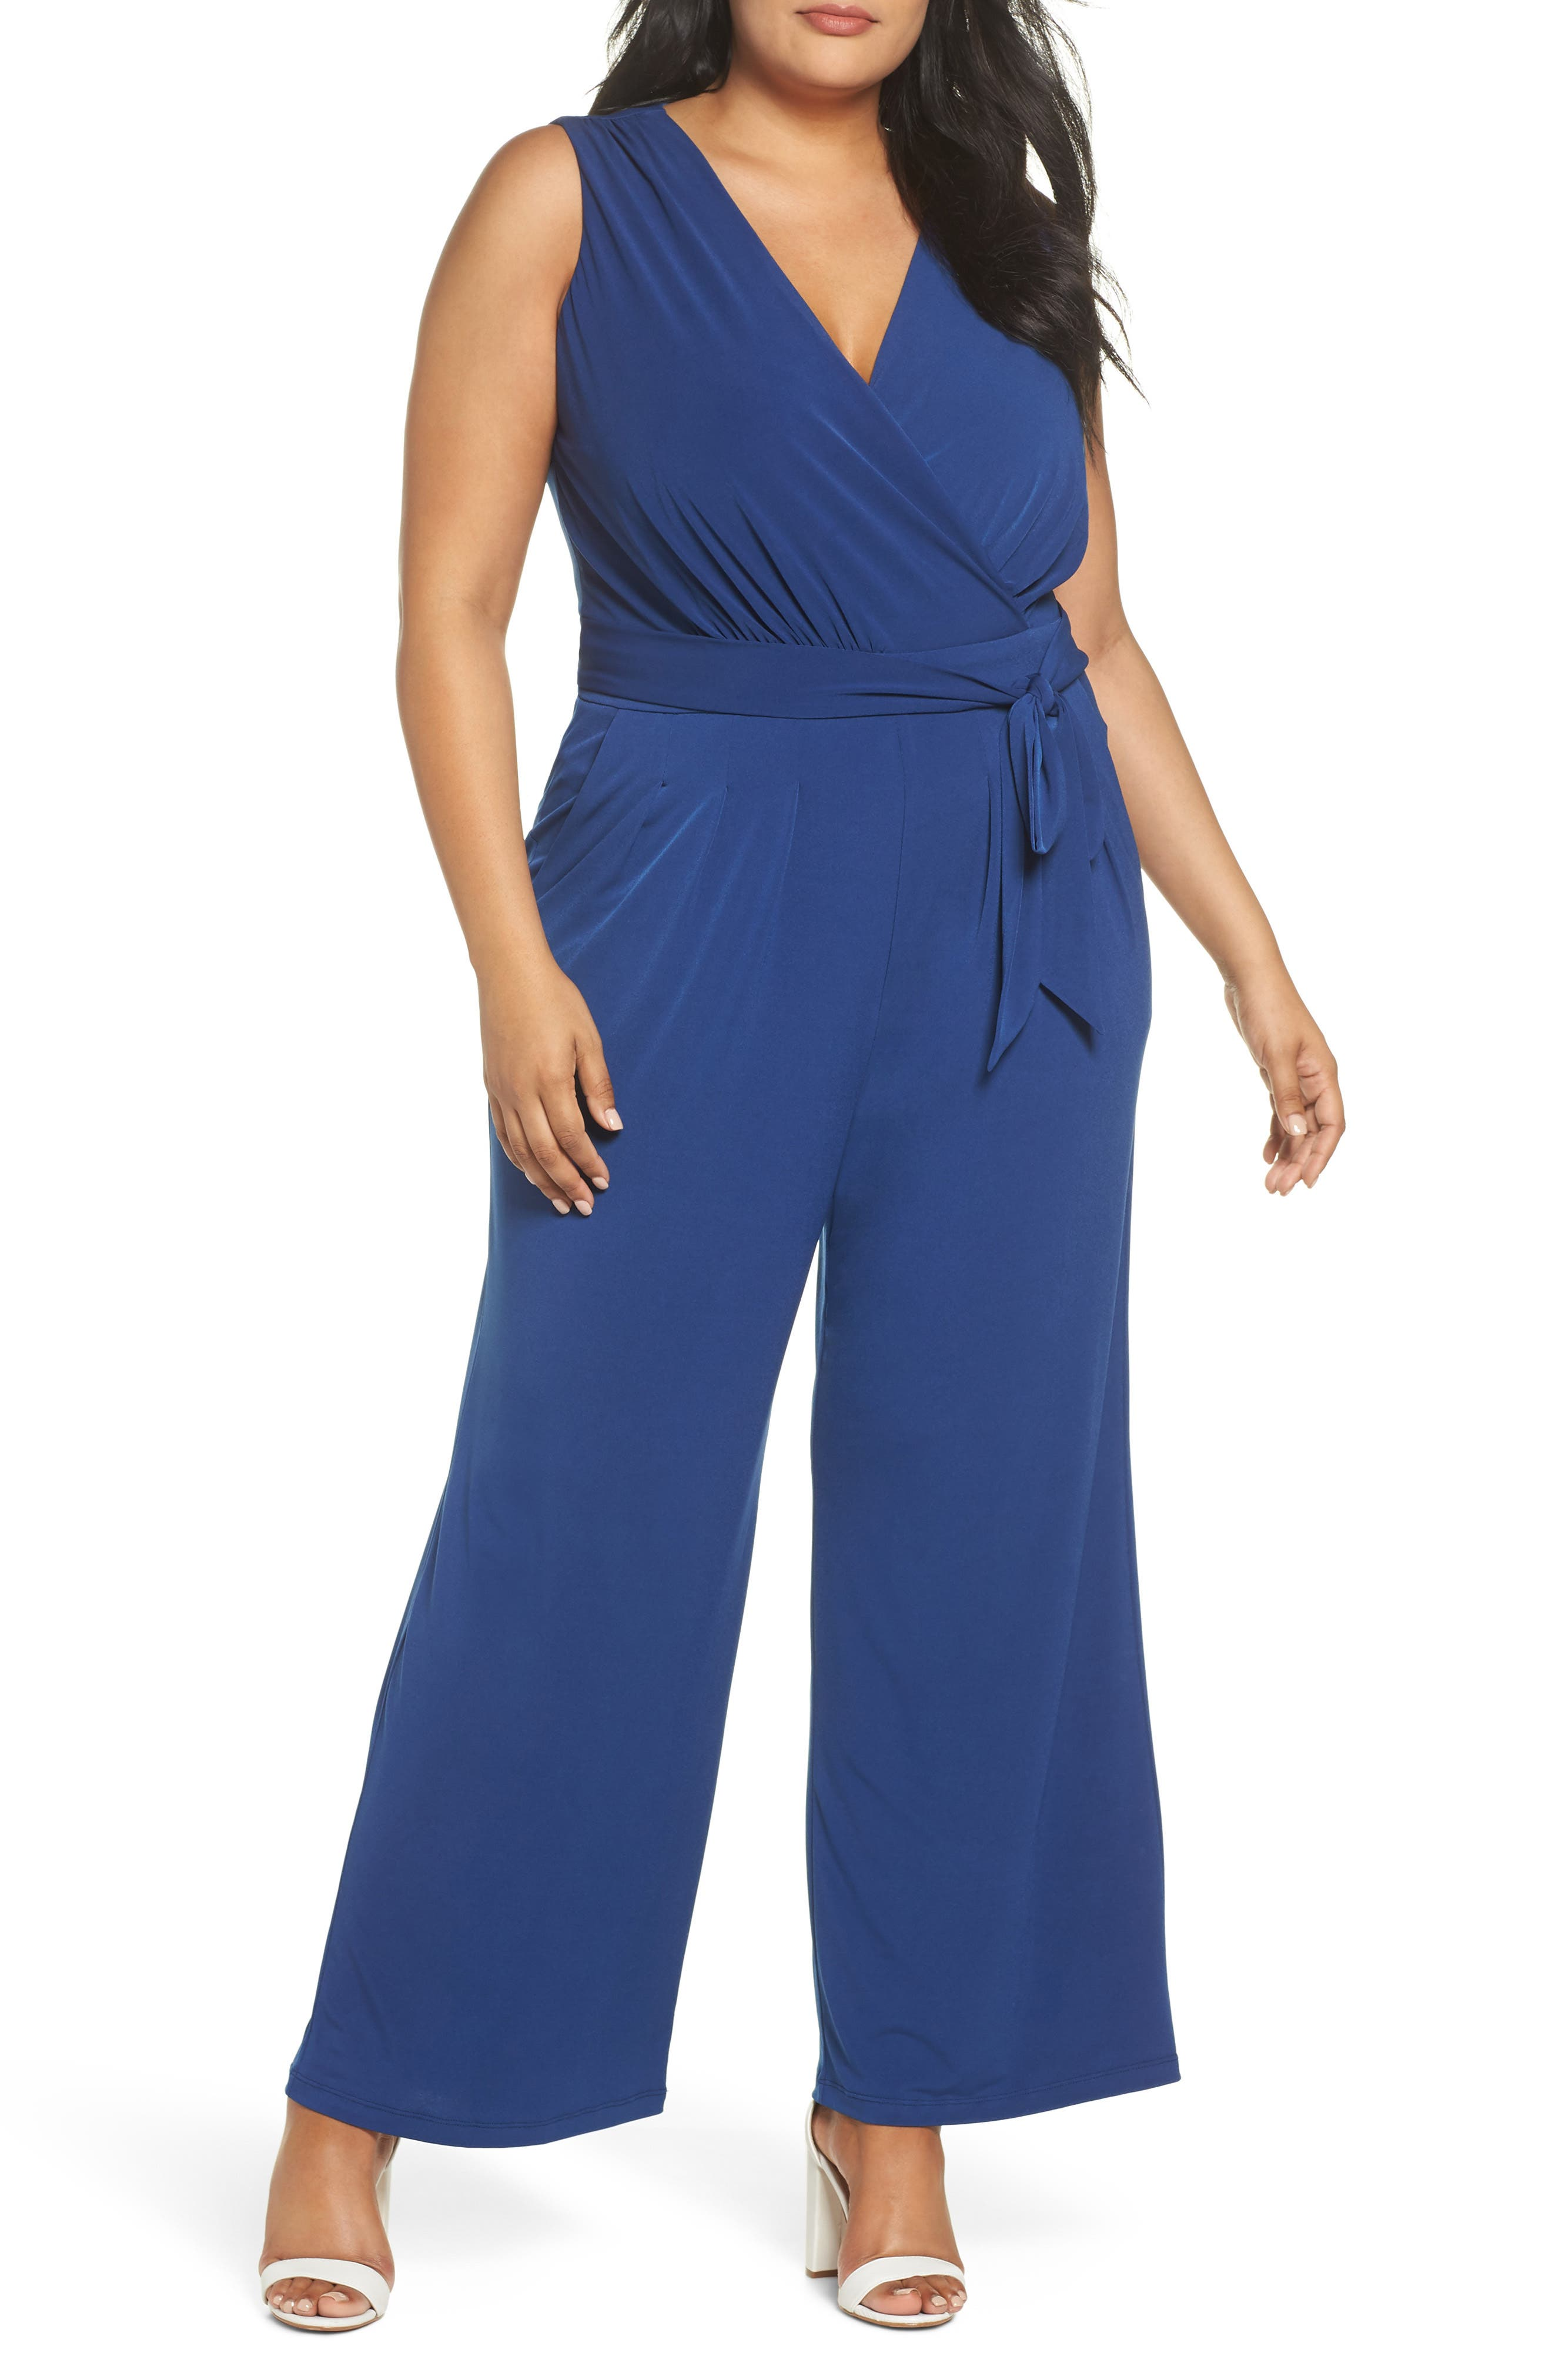 35c518bdf2 Rompers   Jumpsuits Plus-Size Dresses